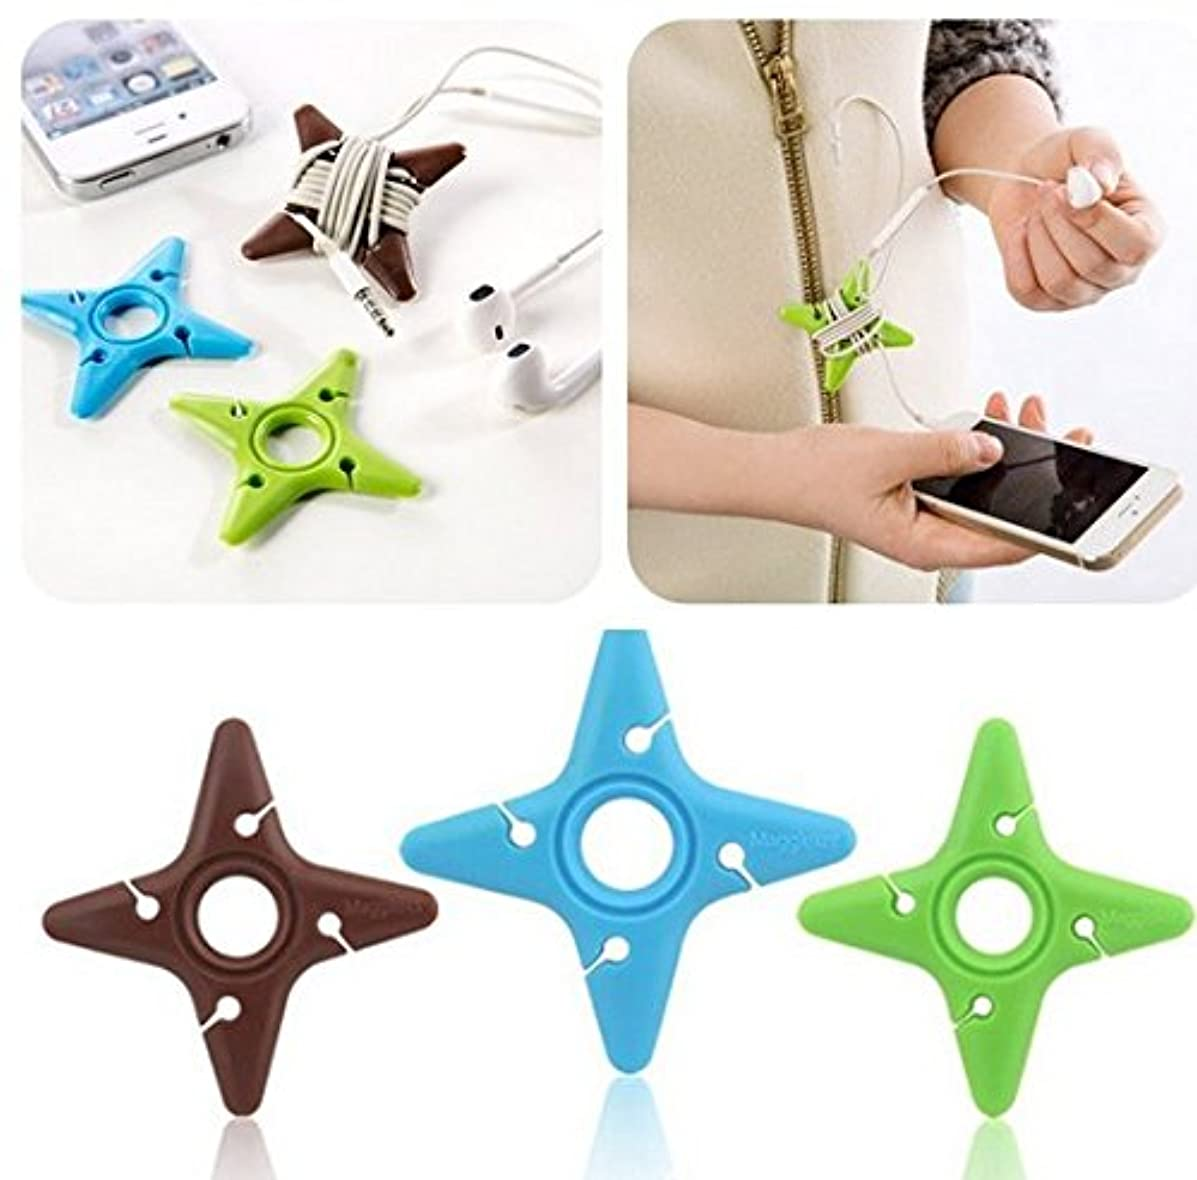 Cute Cable Tie Darts Star Cord Organizer Earphone Wrap Winder Earphone Fixer Holder Cord Manager Cable Winder Mix Color random color(3Pcs)